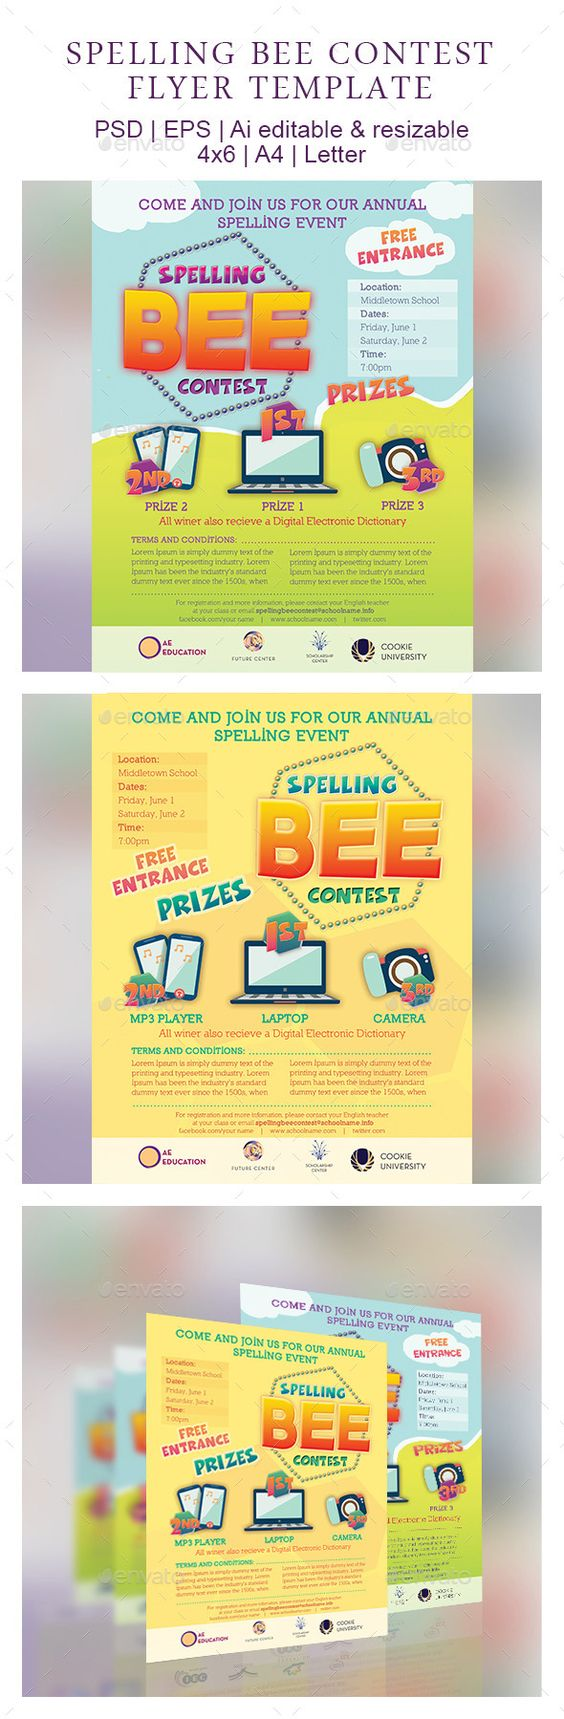 spelling bee contest flyer template flyer template student and event flyers